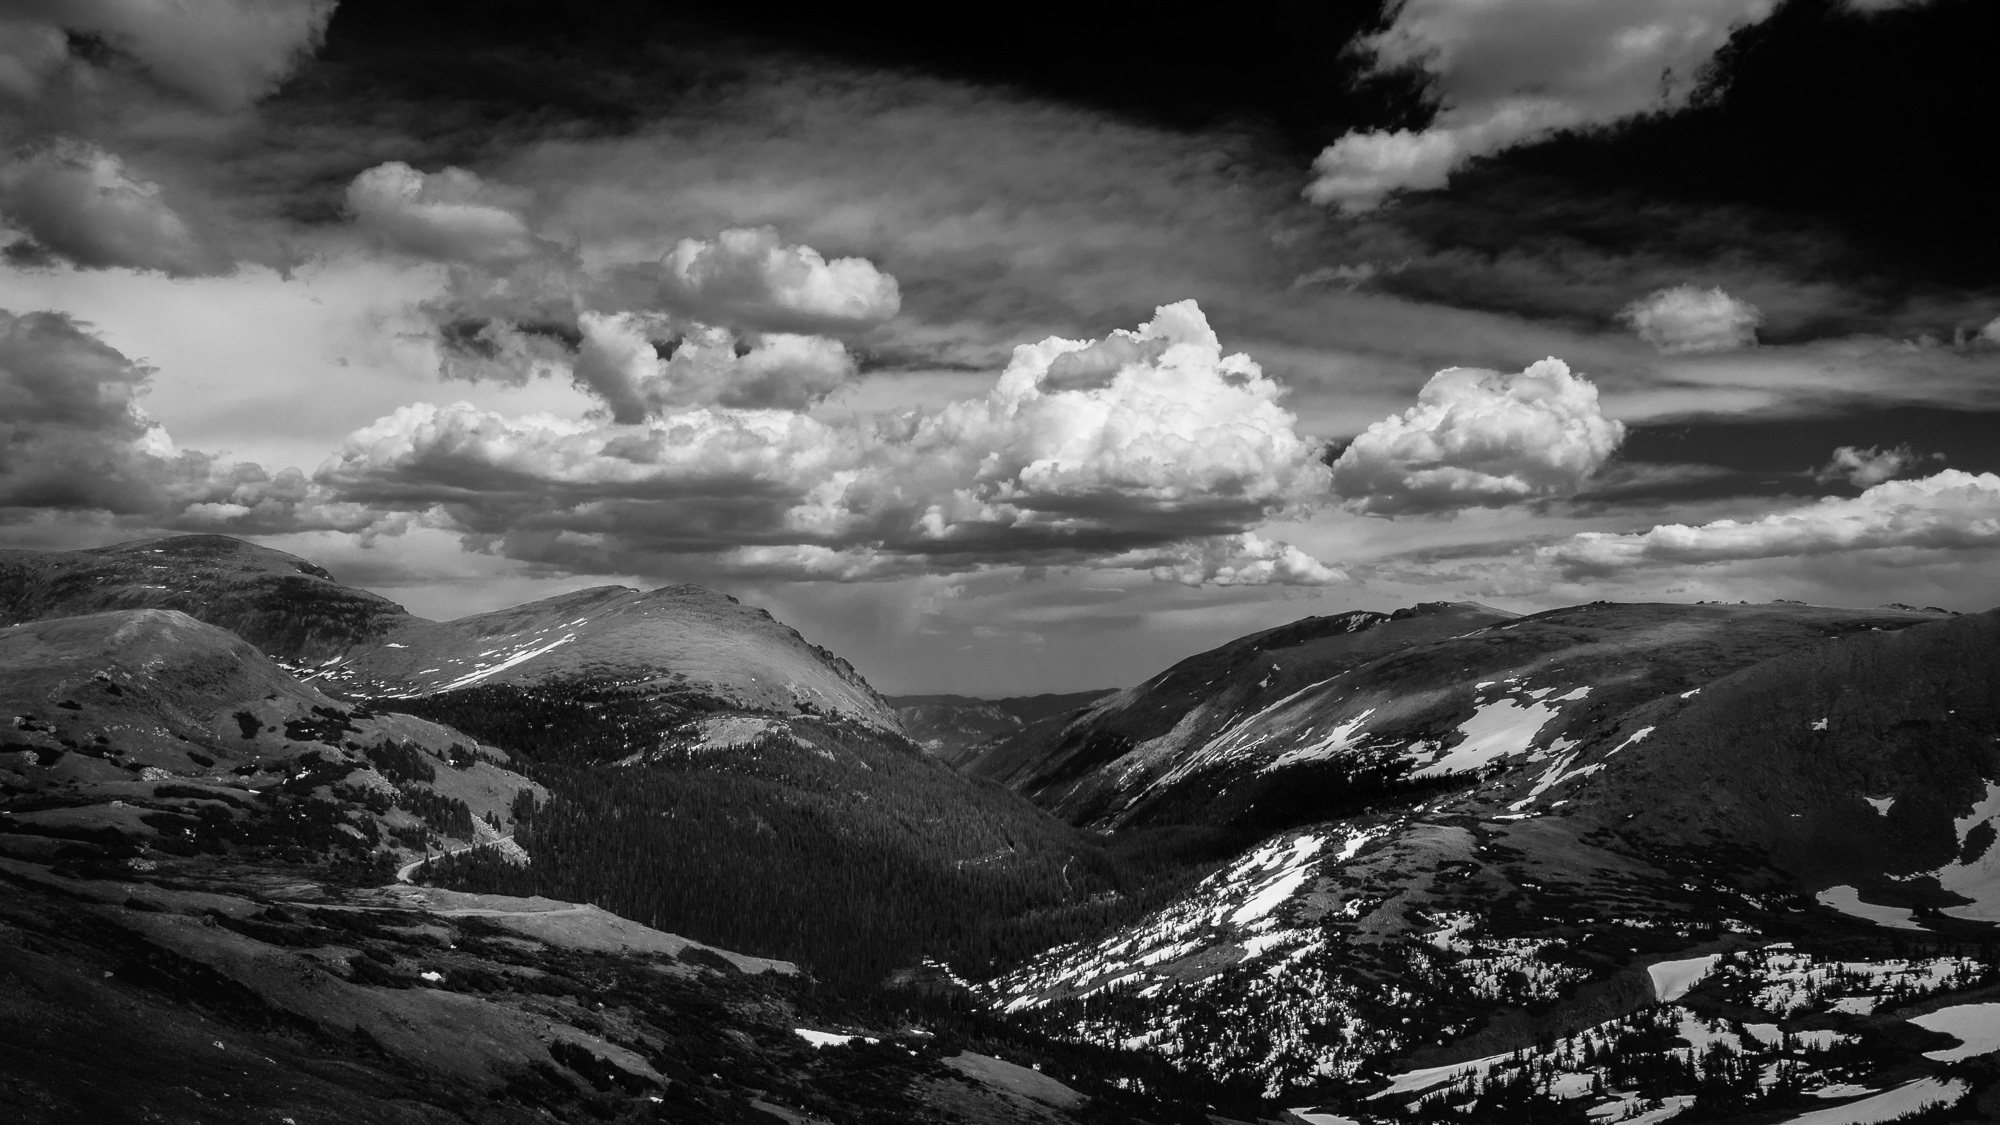 A view from the road while driving through Rocky Mountain National Park